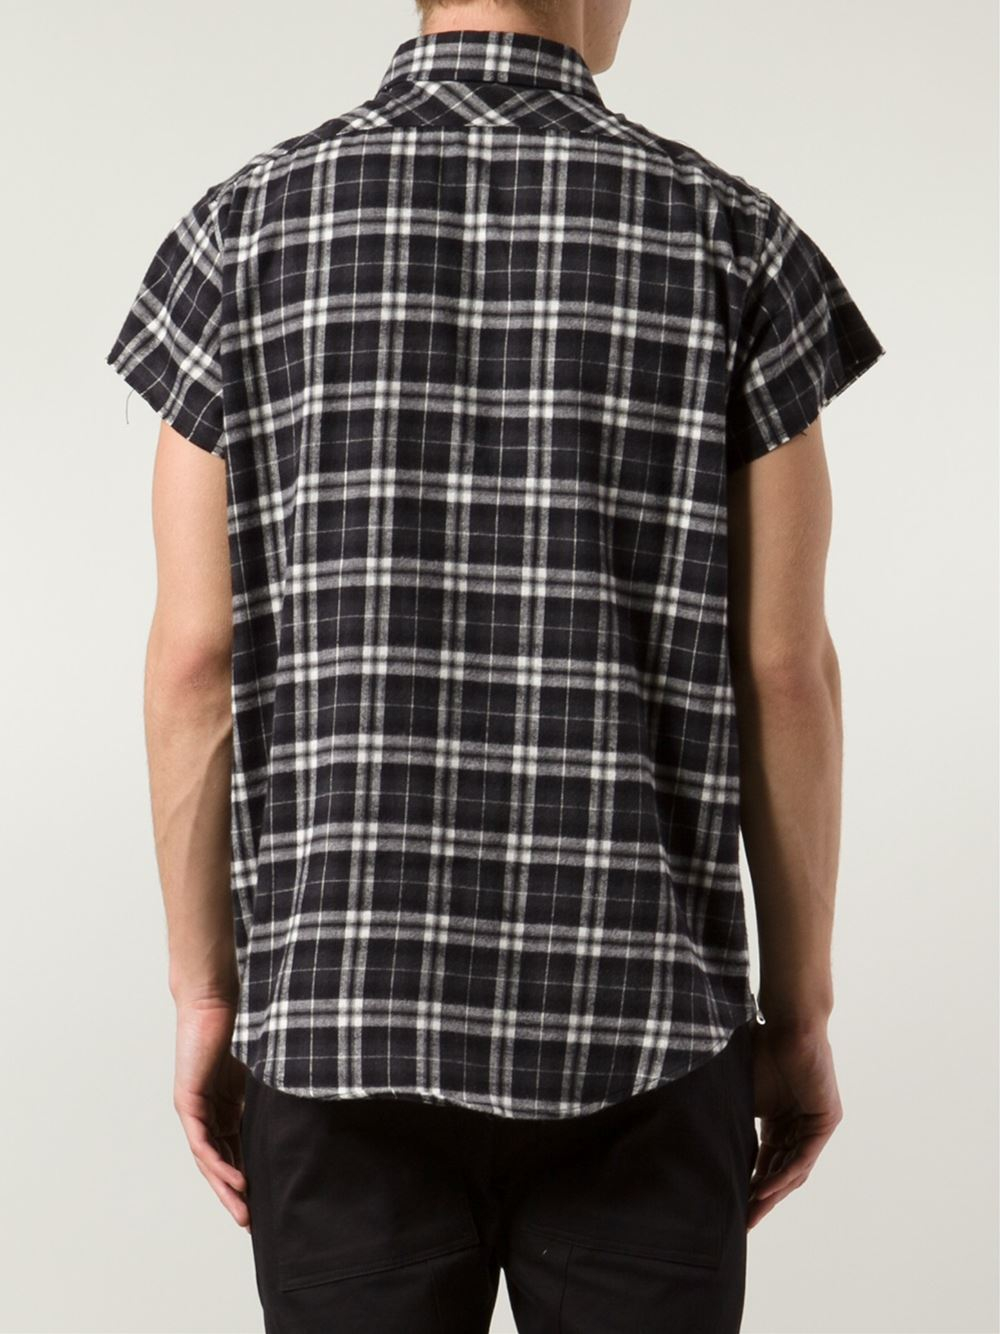 Lyst fear of god short sleeve plaid shirt in black for men Short sleeve plaid shirts